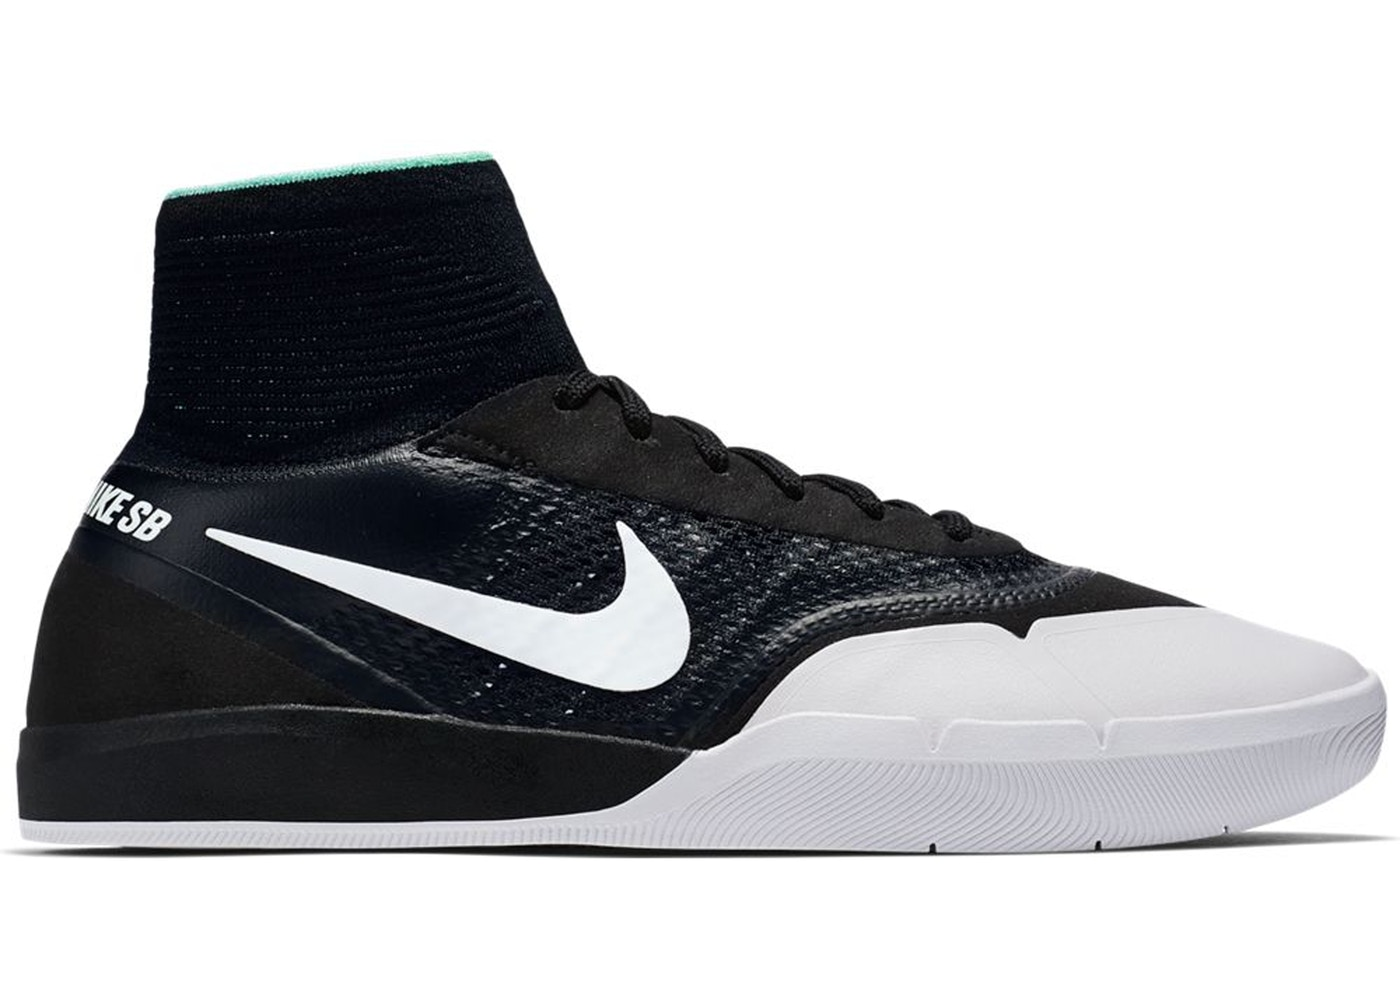 accidente venganza represa  Nike SB Hyperfeel Koston 3 Black White - 860627-010